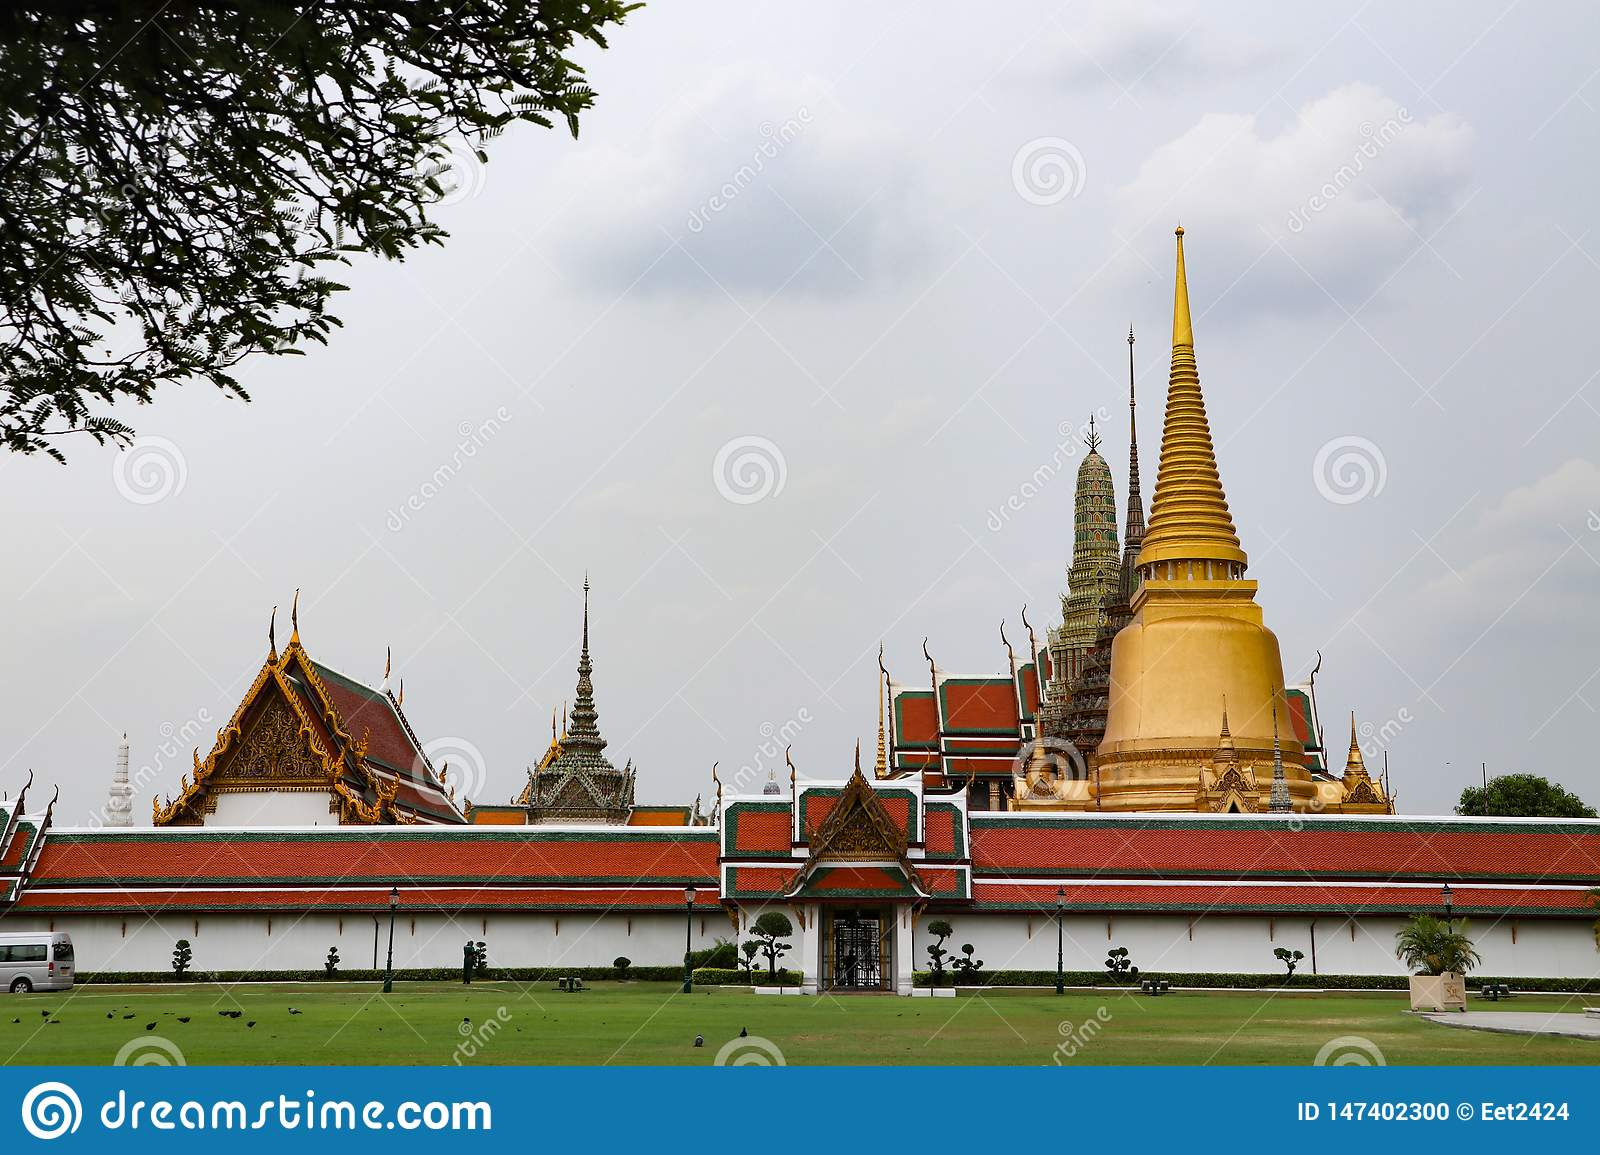 Wat Phra Kaew, commonly known in English as the Temple of the Emerald Buddha or grand palace is regarded as the most sacred Buddhi